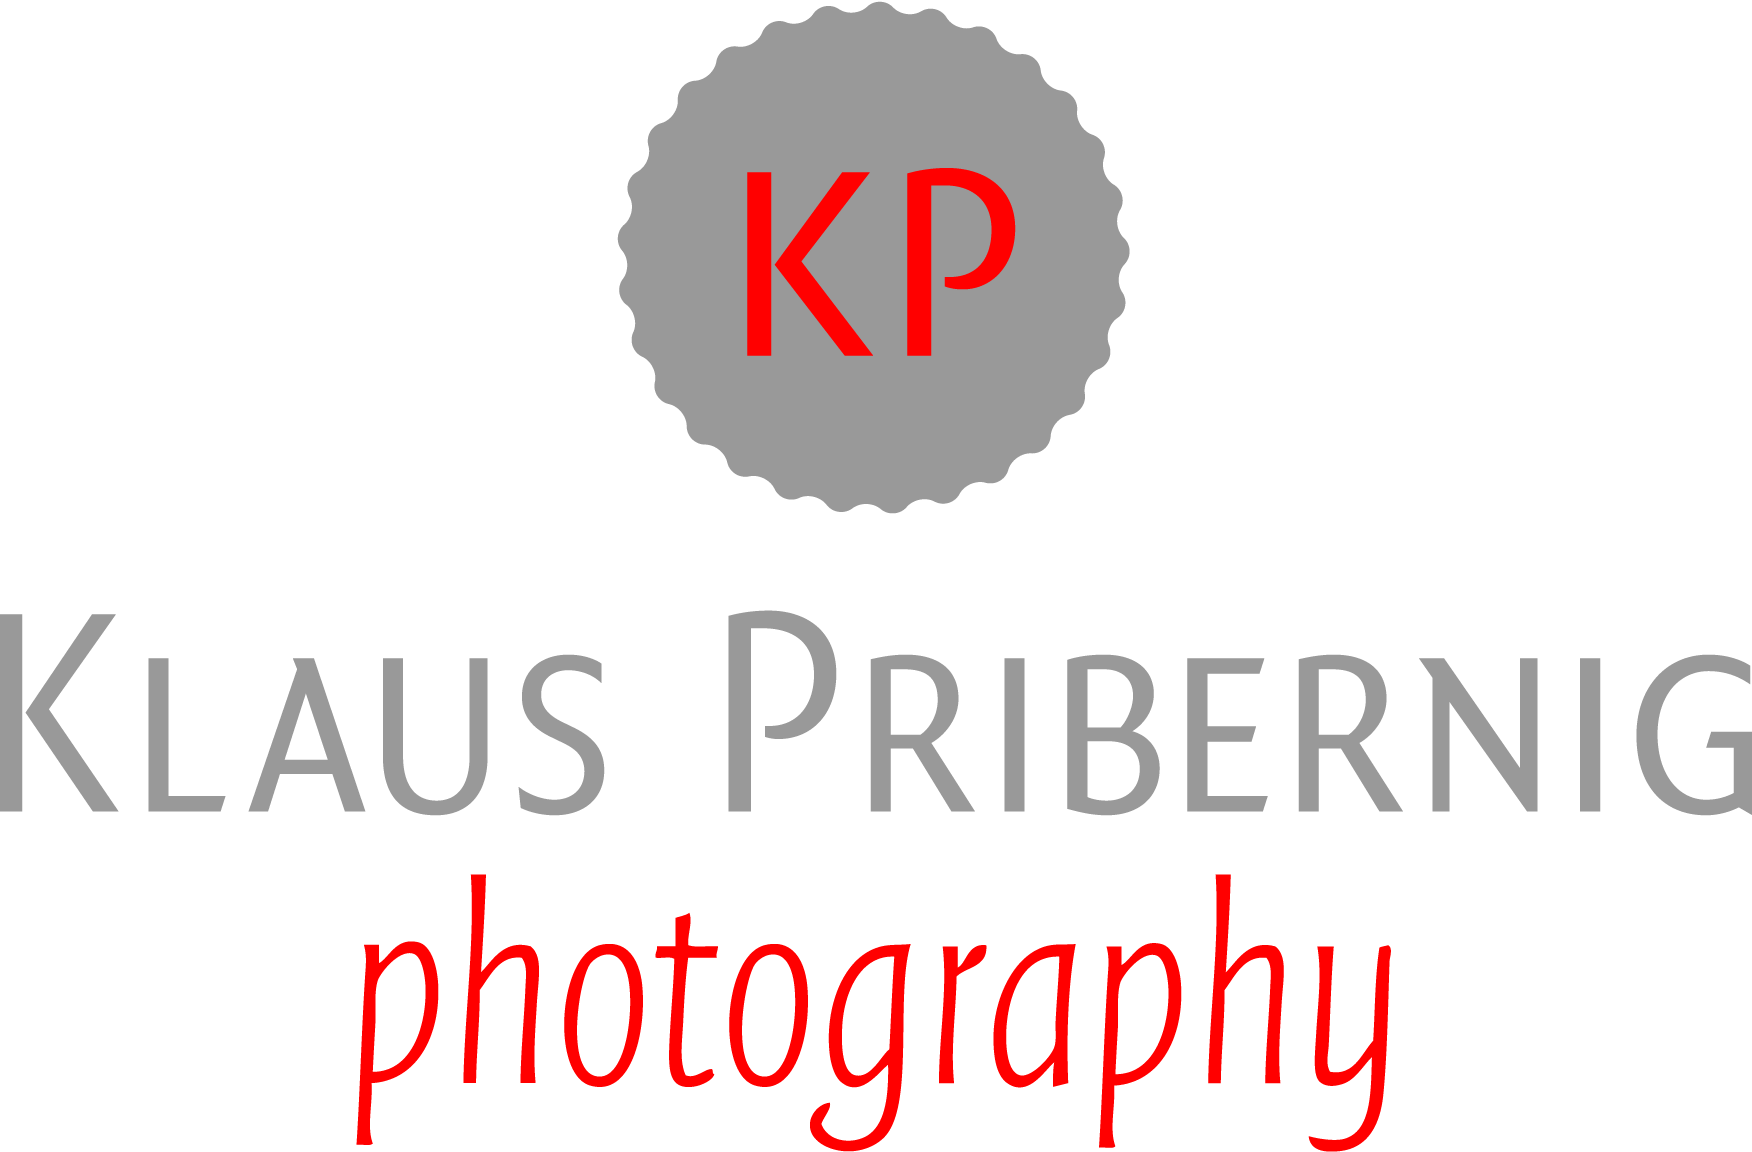 KlausPribernig PHOTOGRAPHY